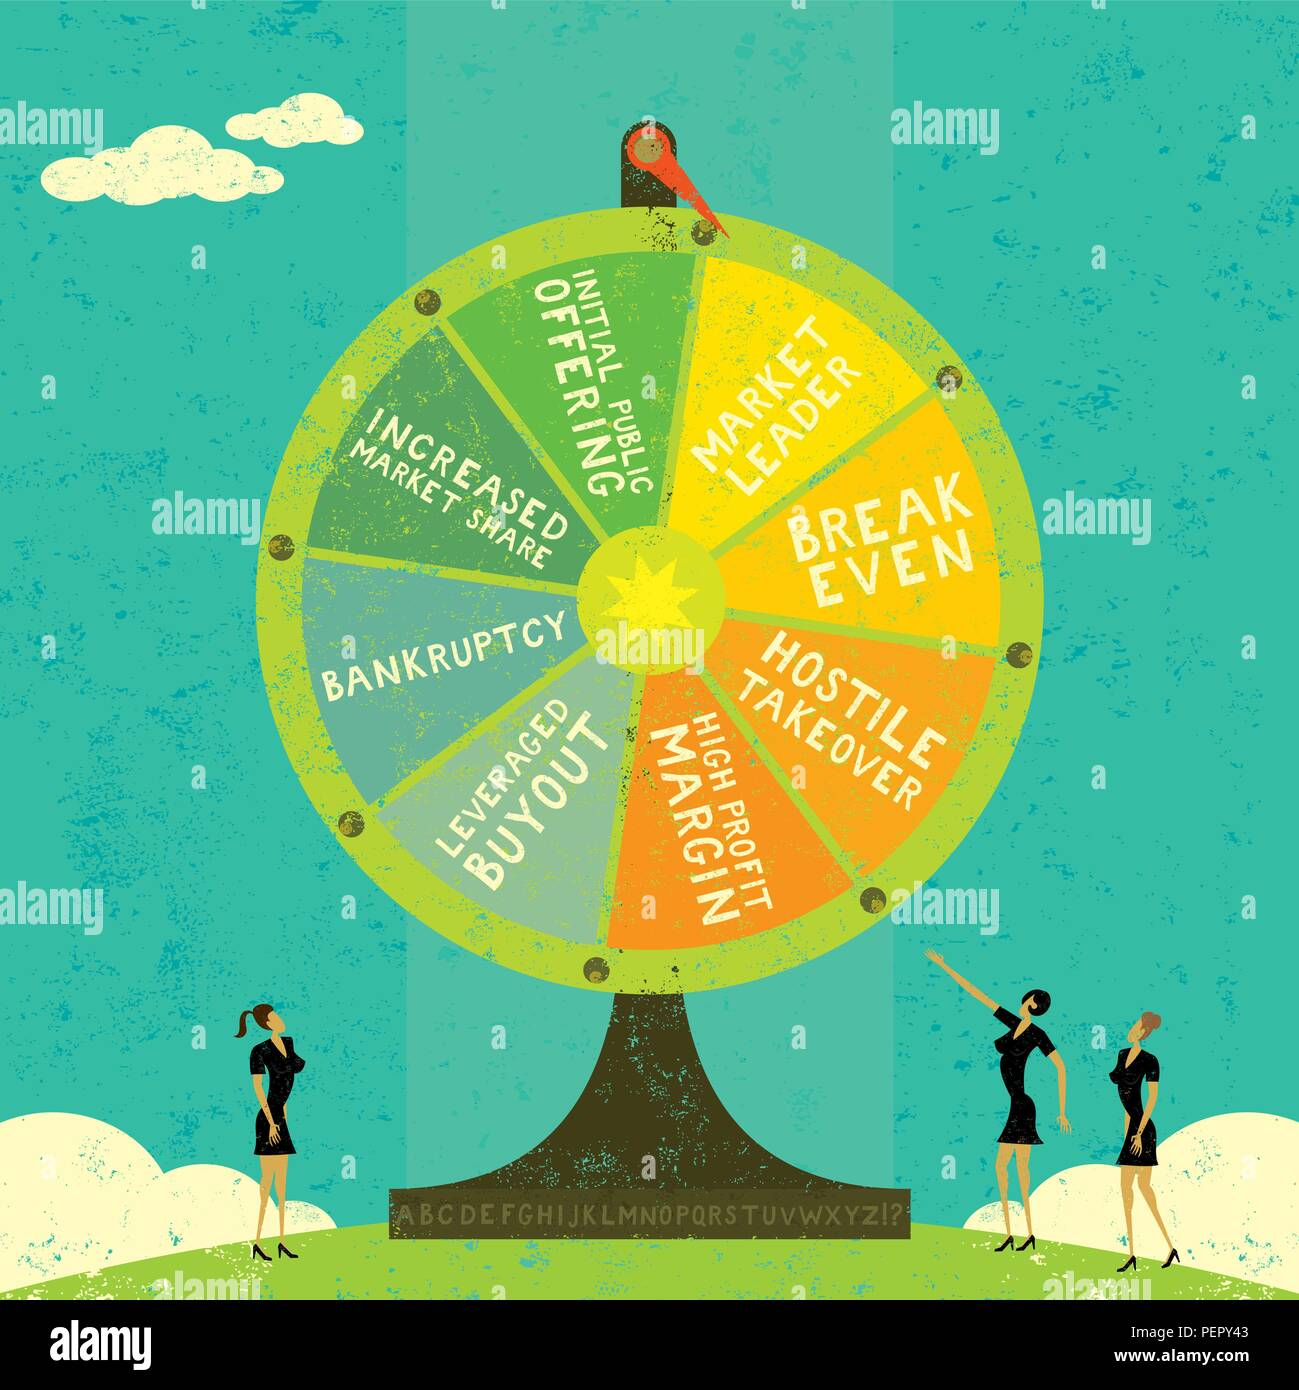 Fortune Wheel. Businesswomen, uncertain of their company's future, roll the Fortune Wheel to guess what will happen. - Stock Vector